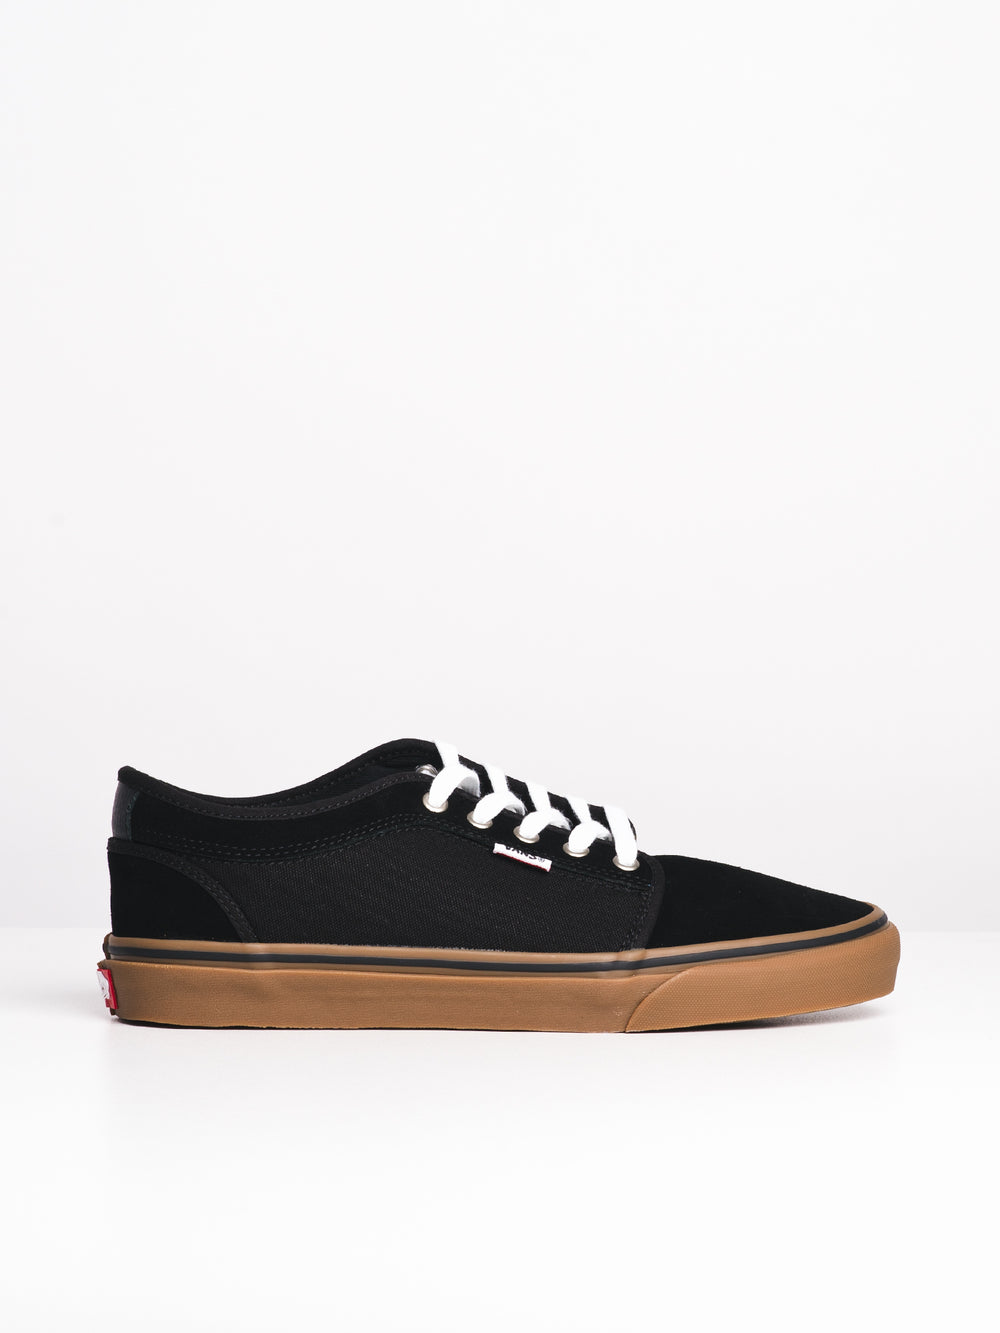 MENS CHUKKA LO BLACK/GUM SNEAKERS